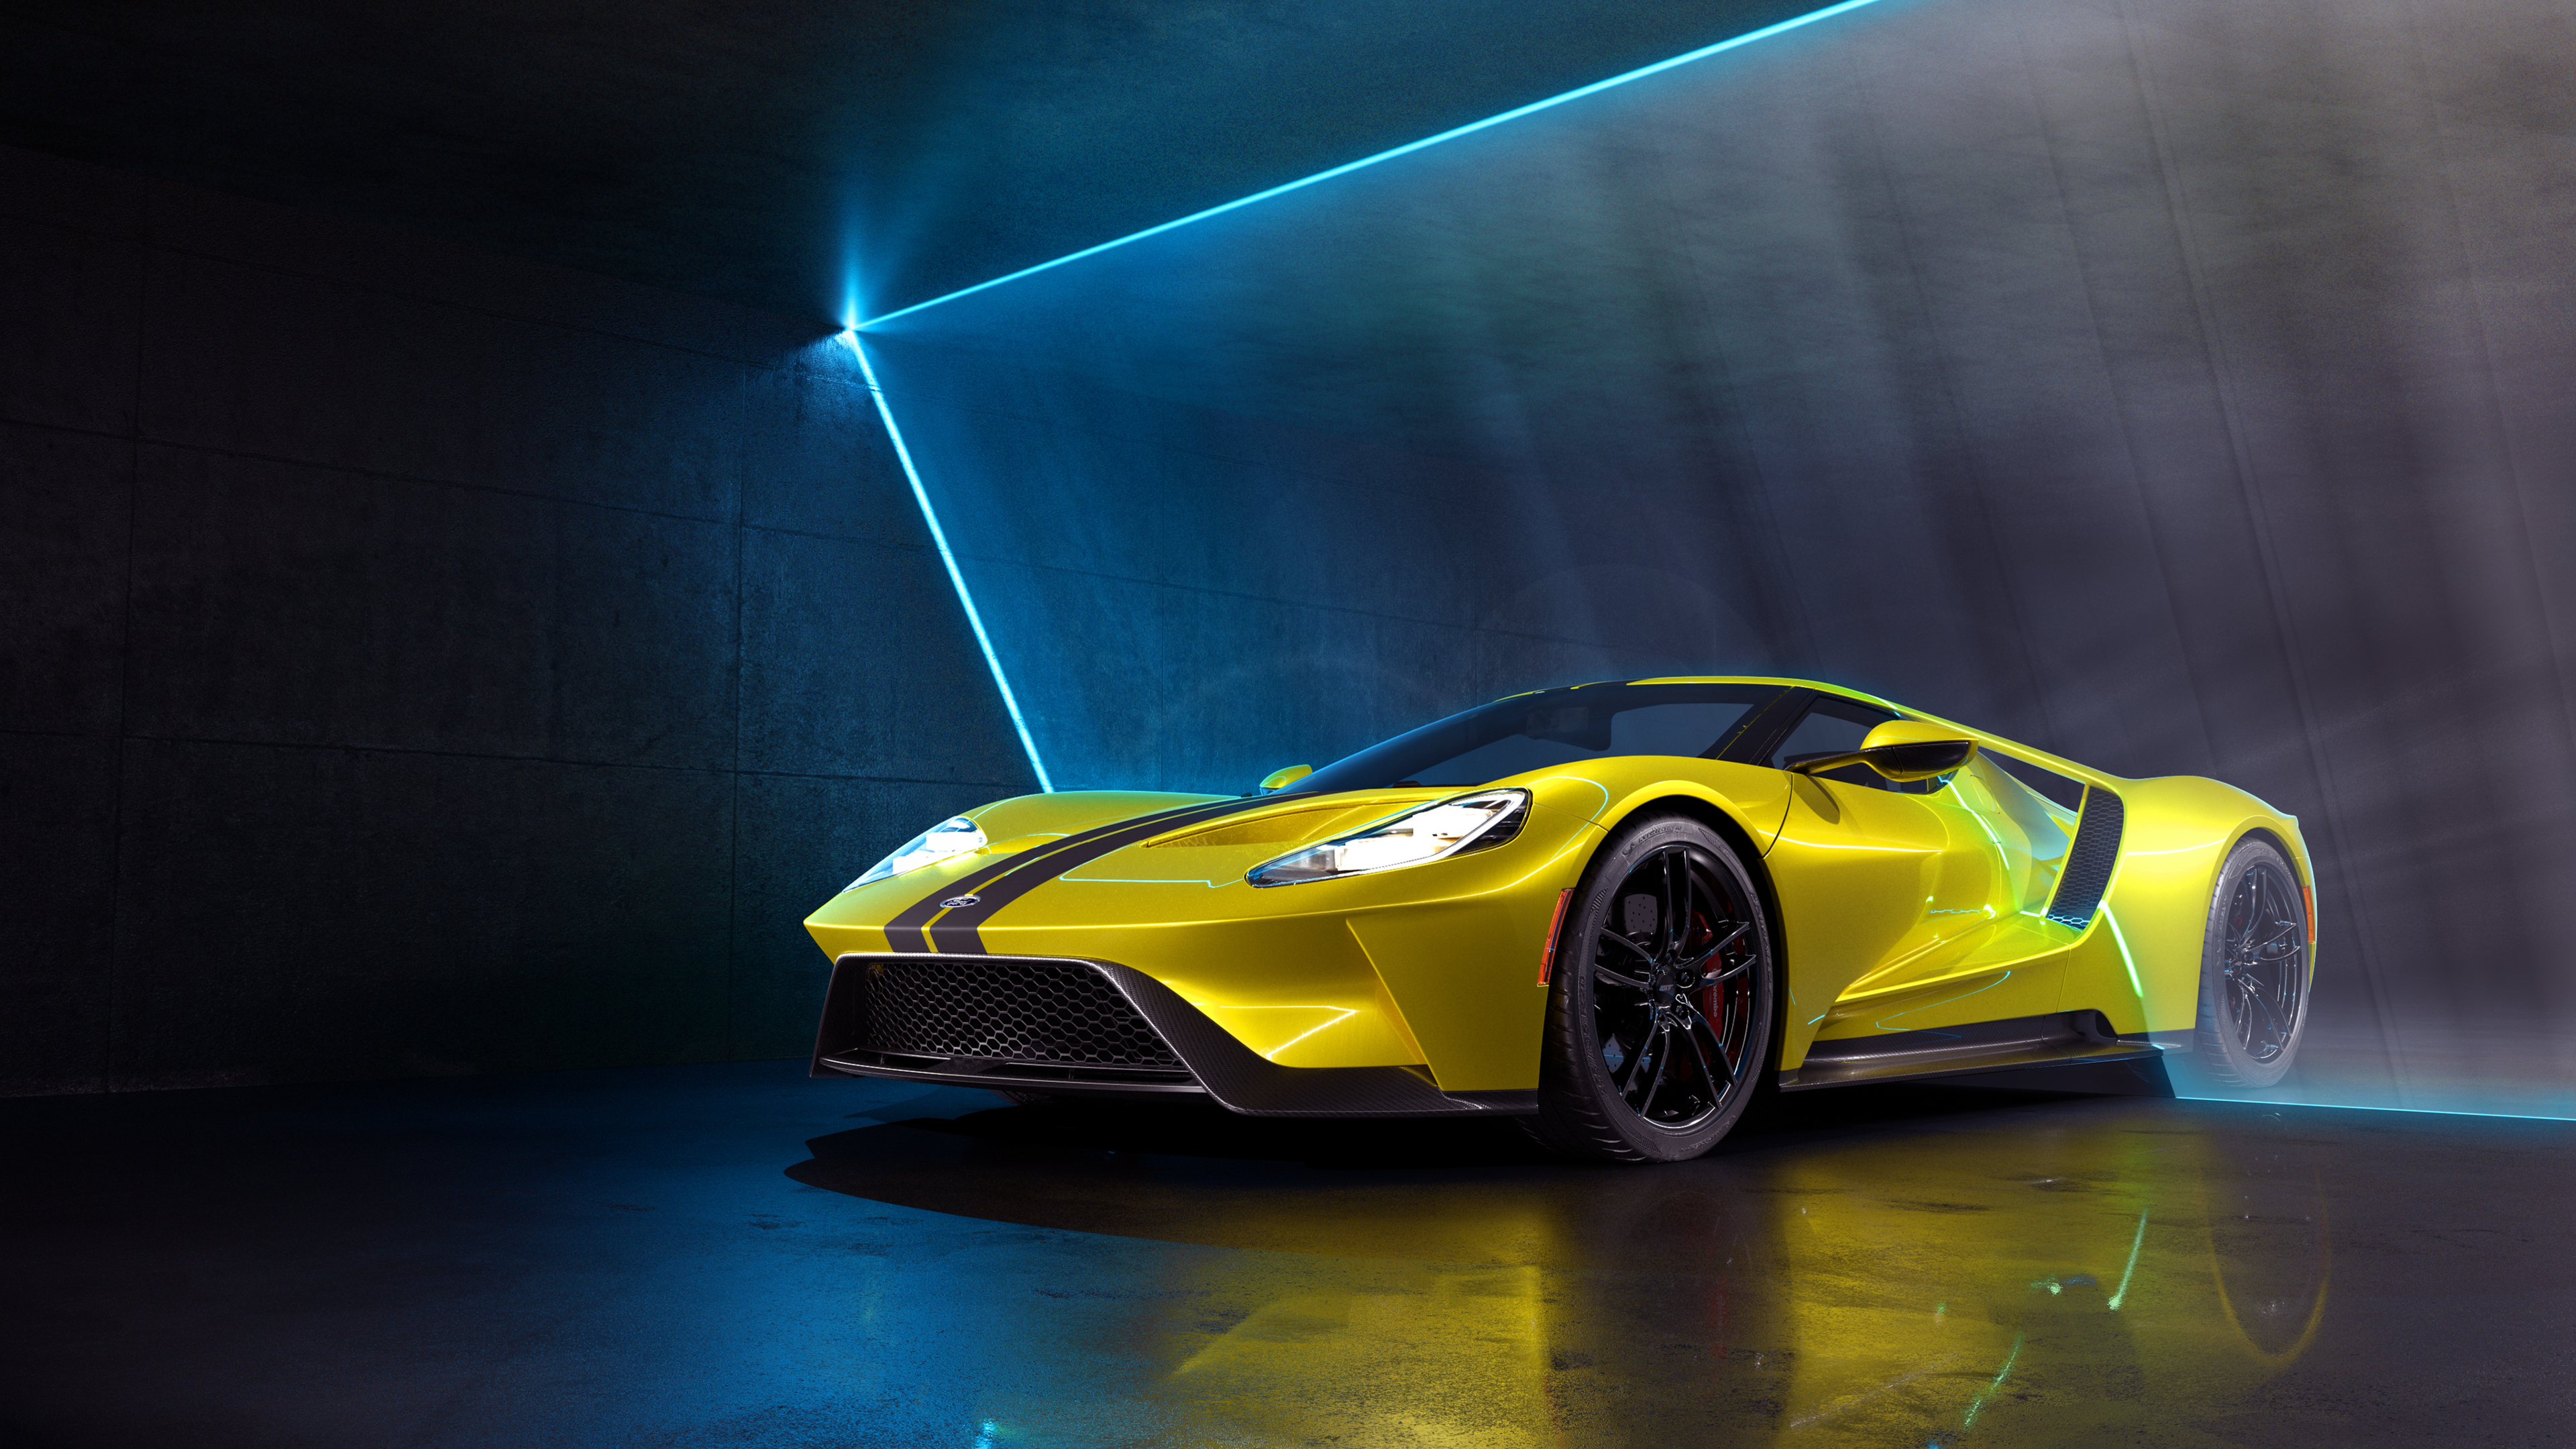 ford gt cgi 1570919232 - Ford GT Cgi - hd-wallpapers, ford wallpapers, ford gt wallpapers, cars wallpapers, behance wallpapers, 4k-wallpapers